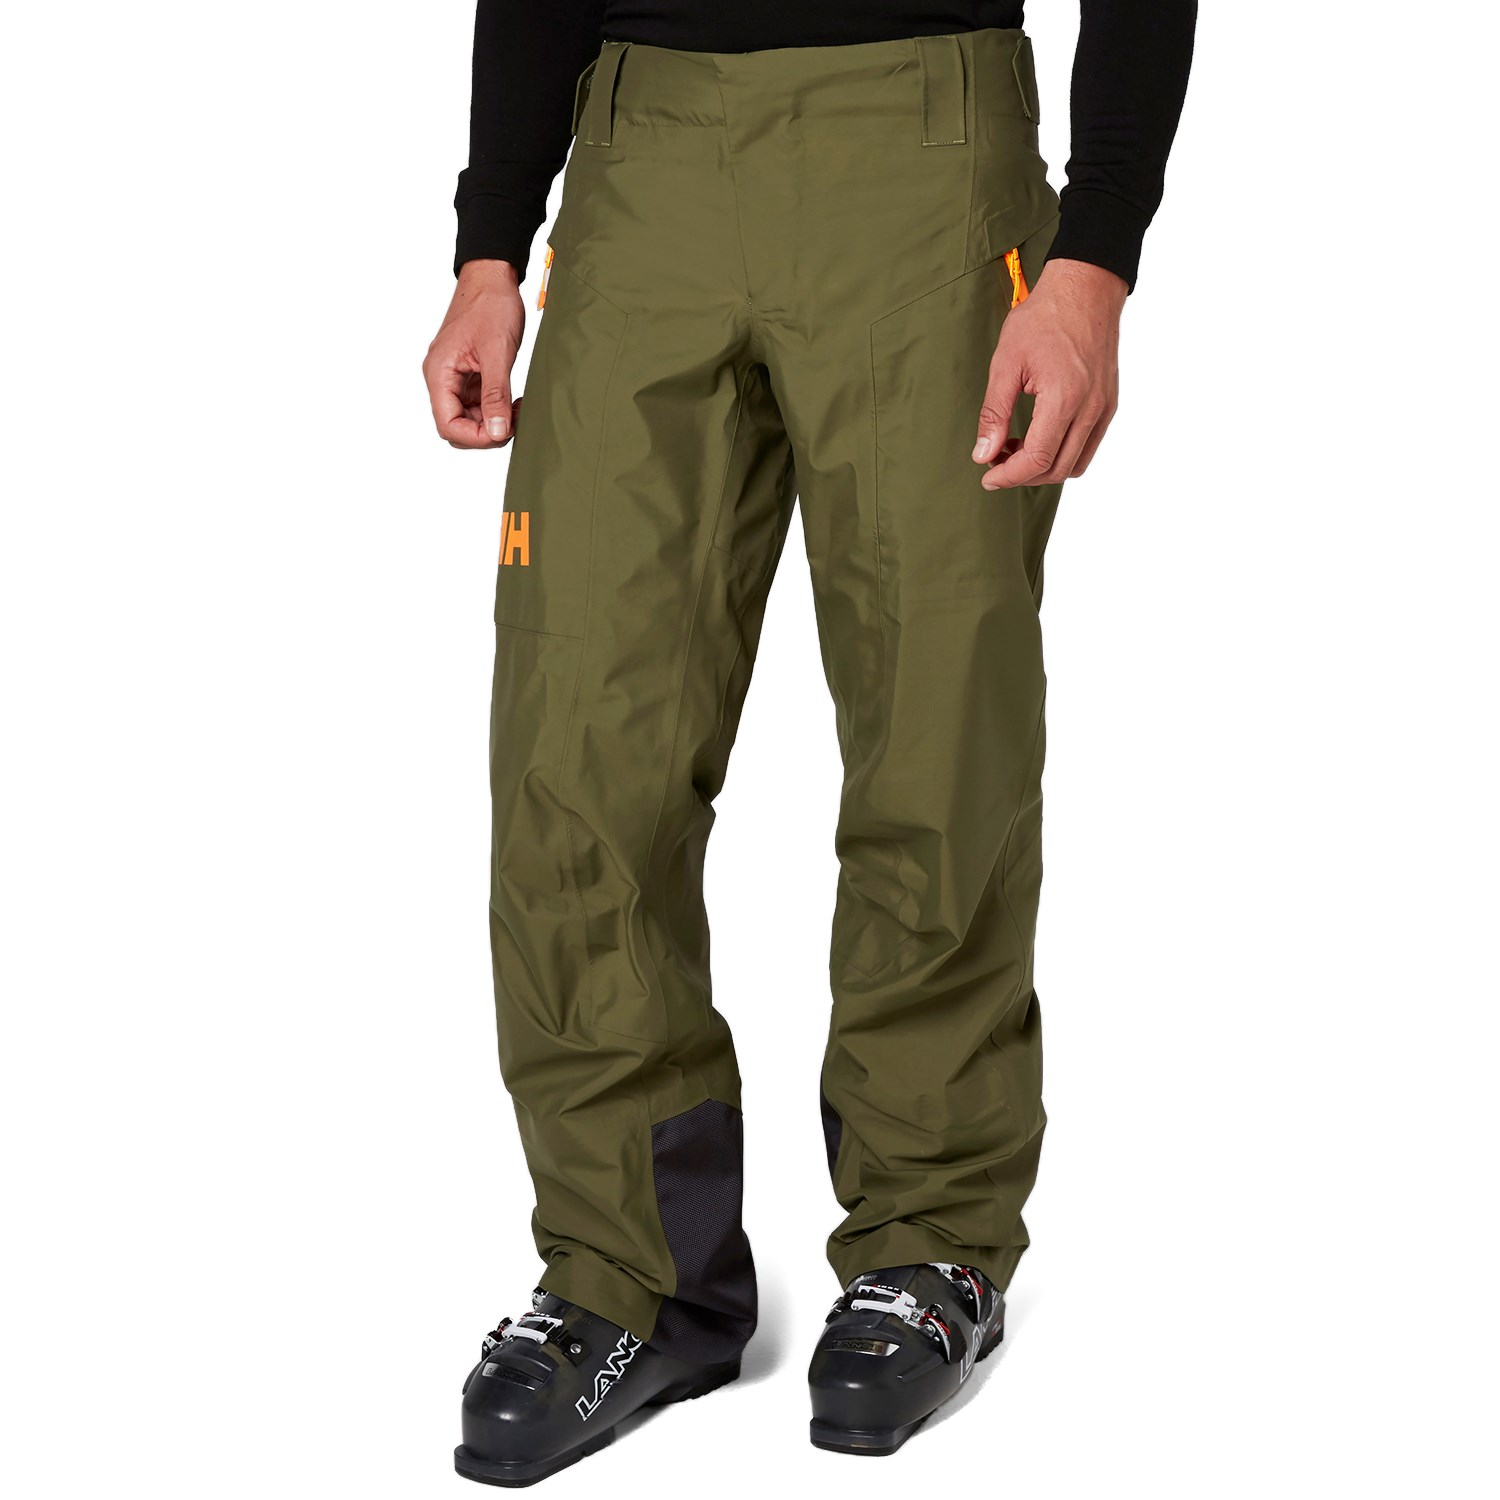 841e06c011a31 Helly Hansen Elevate Shell Pants | evo